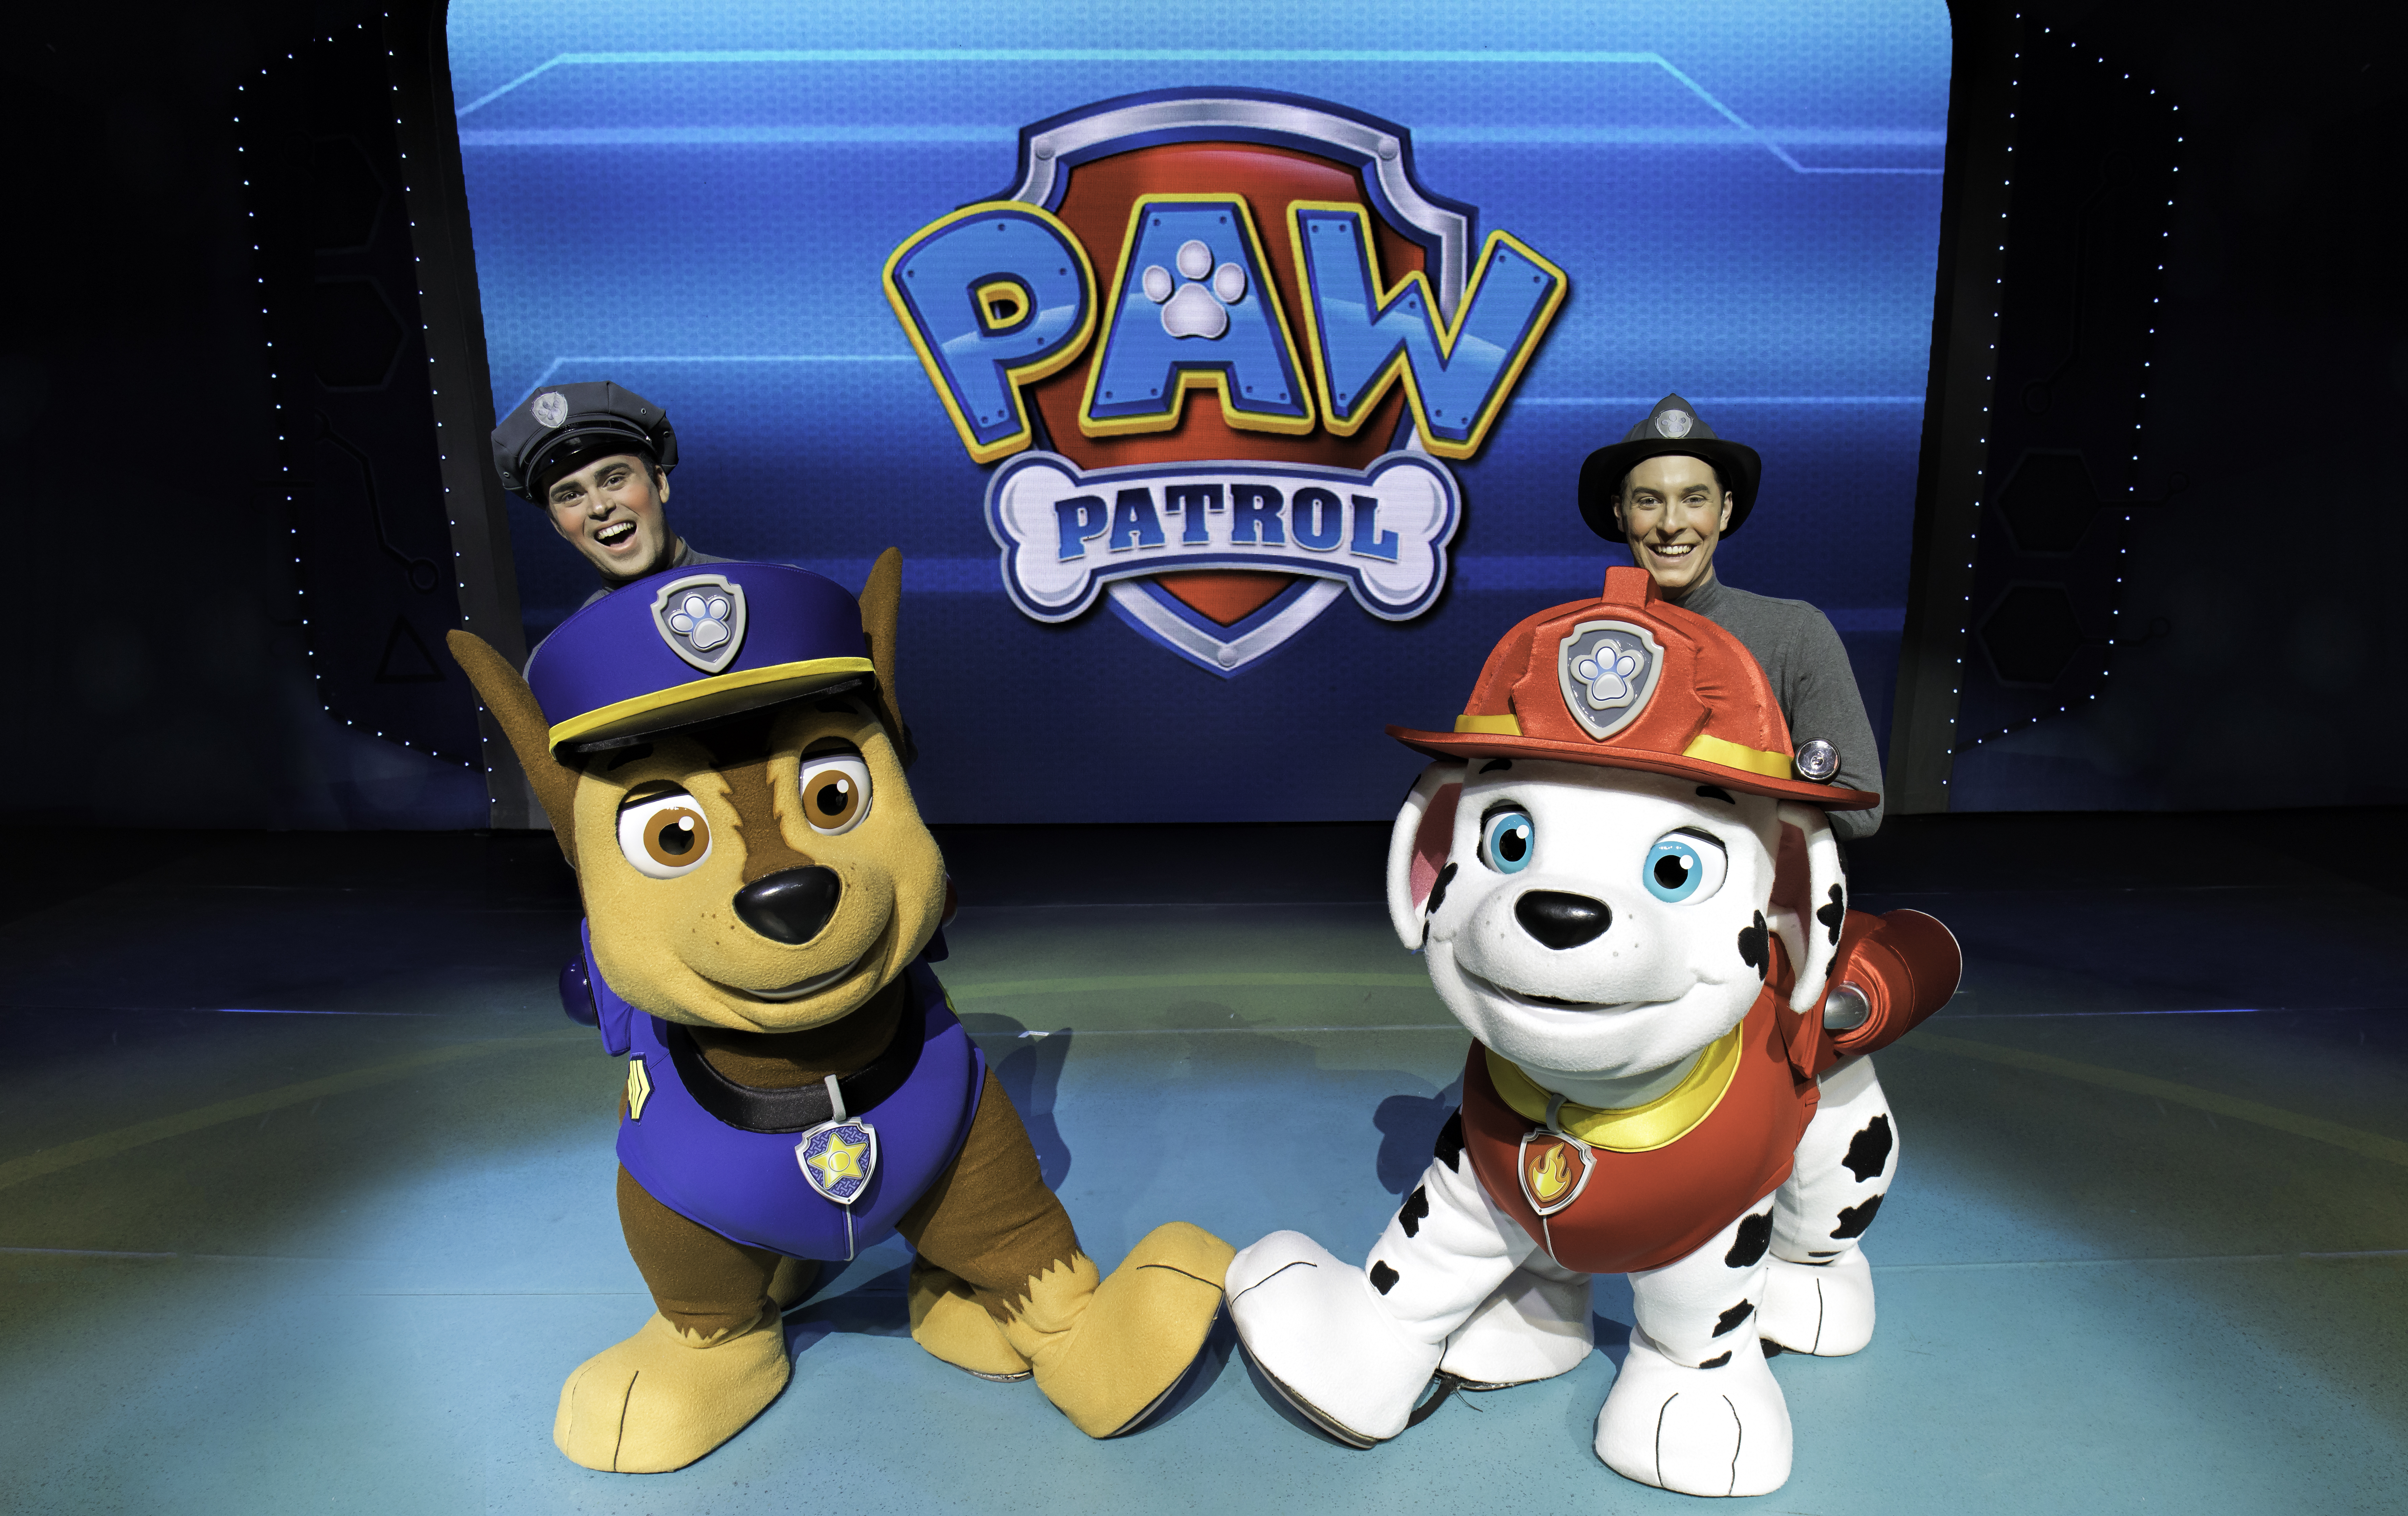 WIN family passes to PAW Patrol Live !